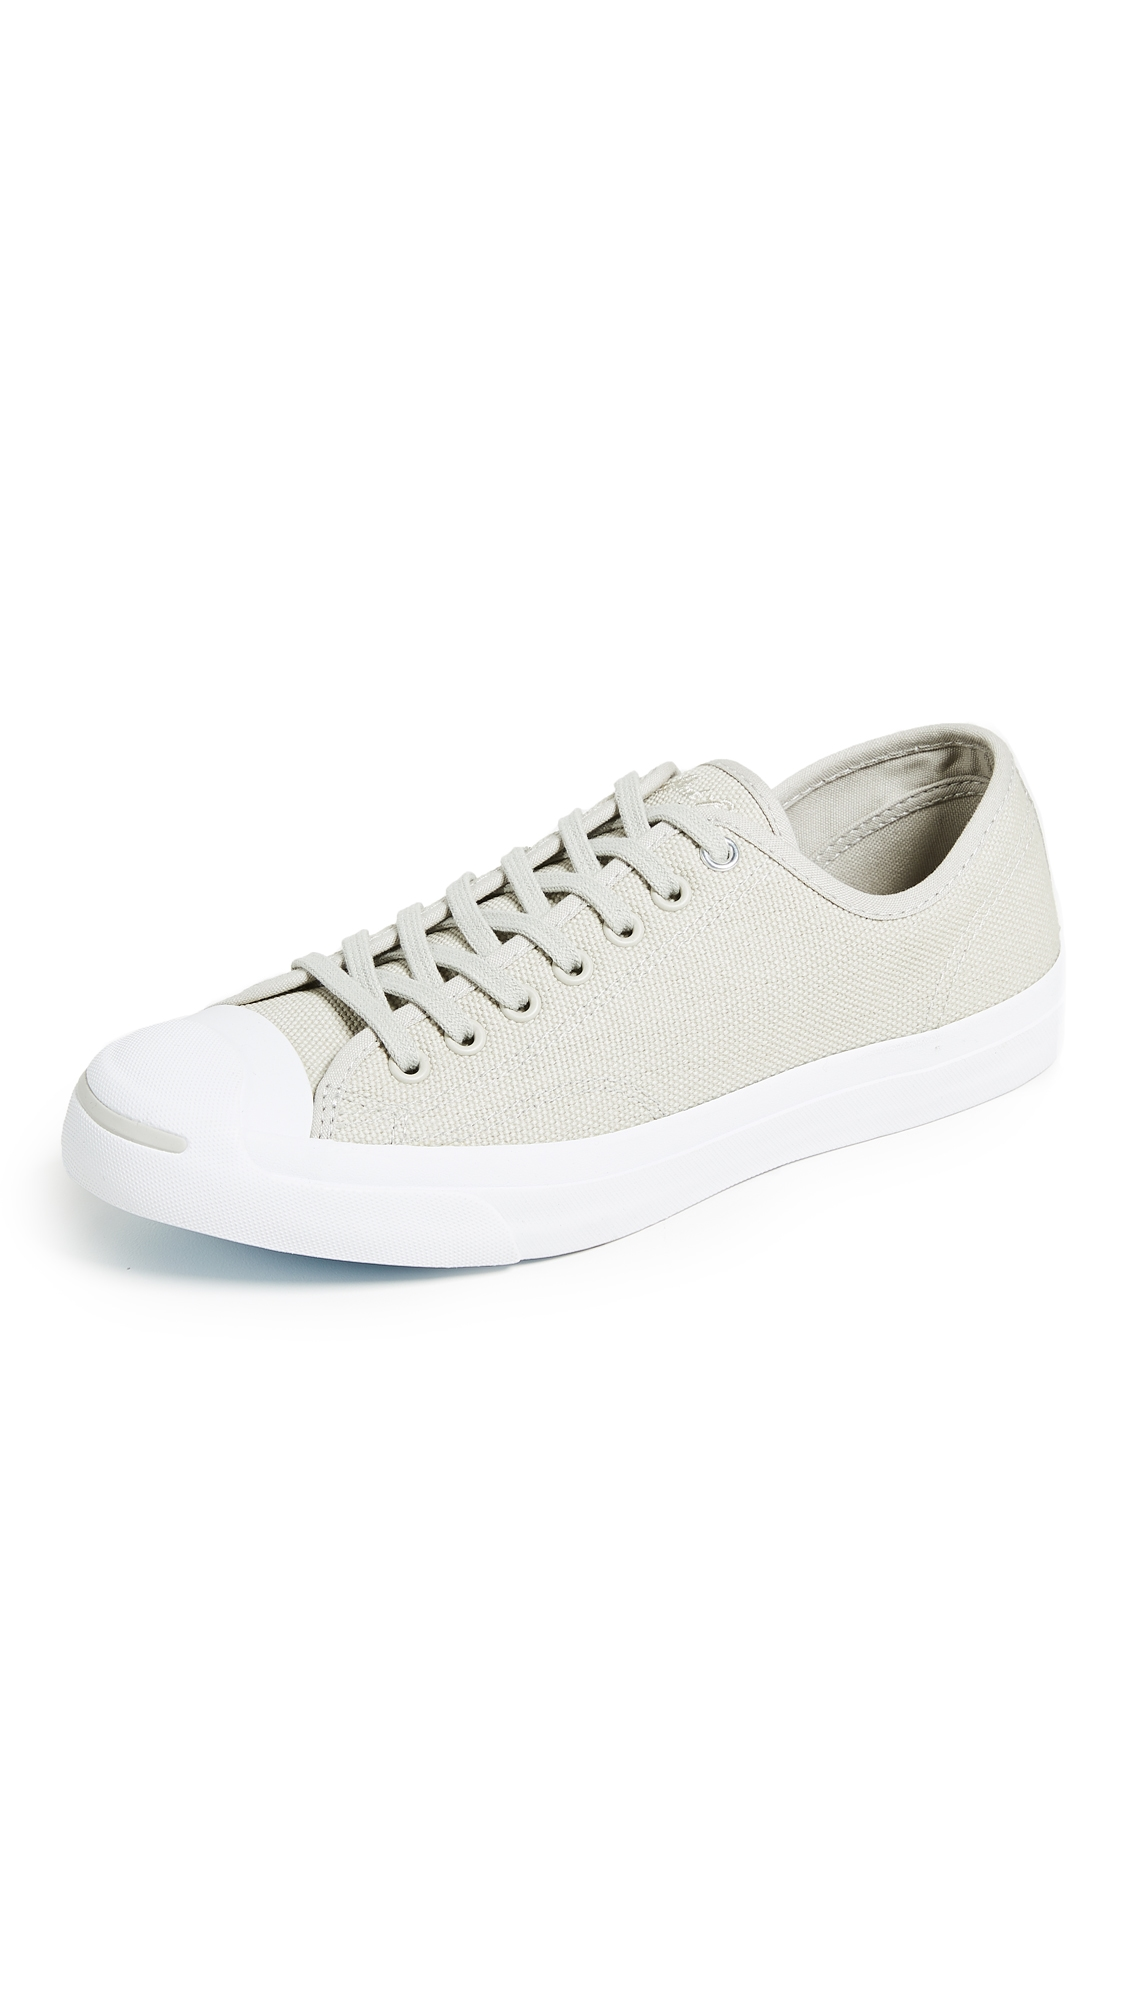 Converse Men's Jack Purcell Marble Wash Sneaker he5p00